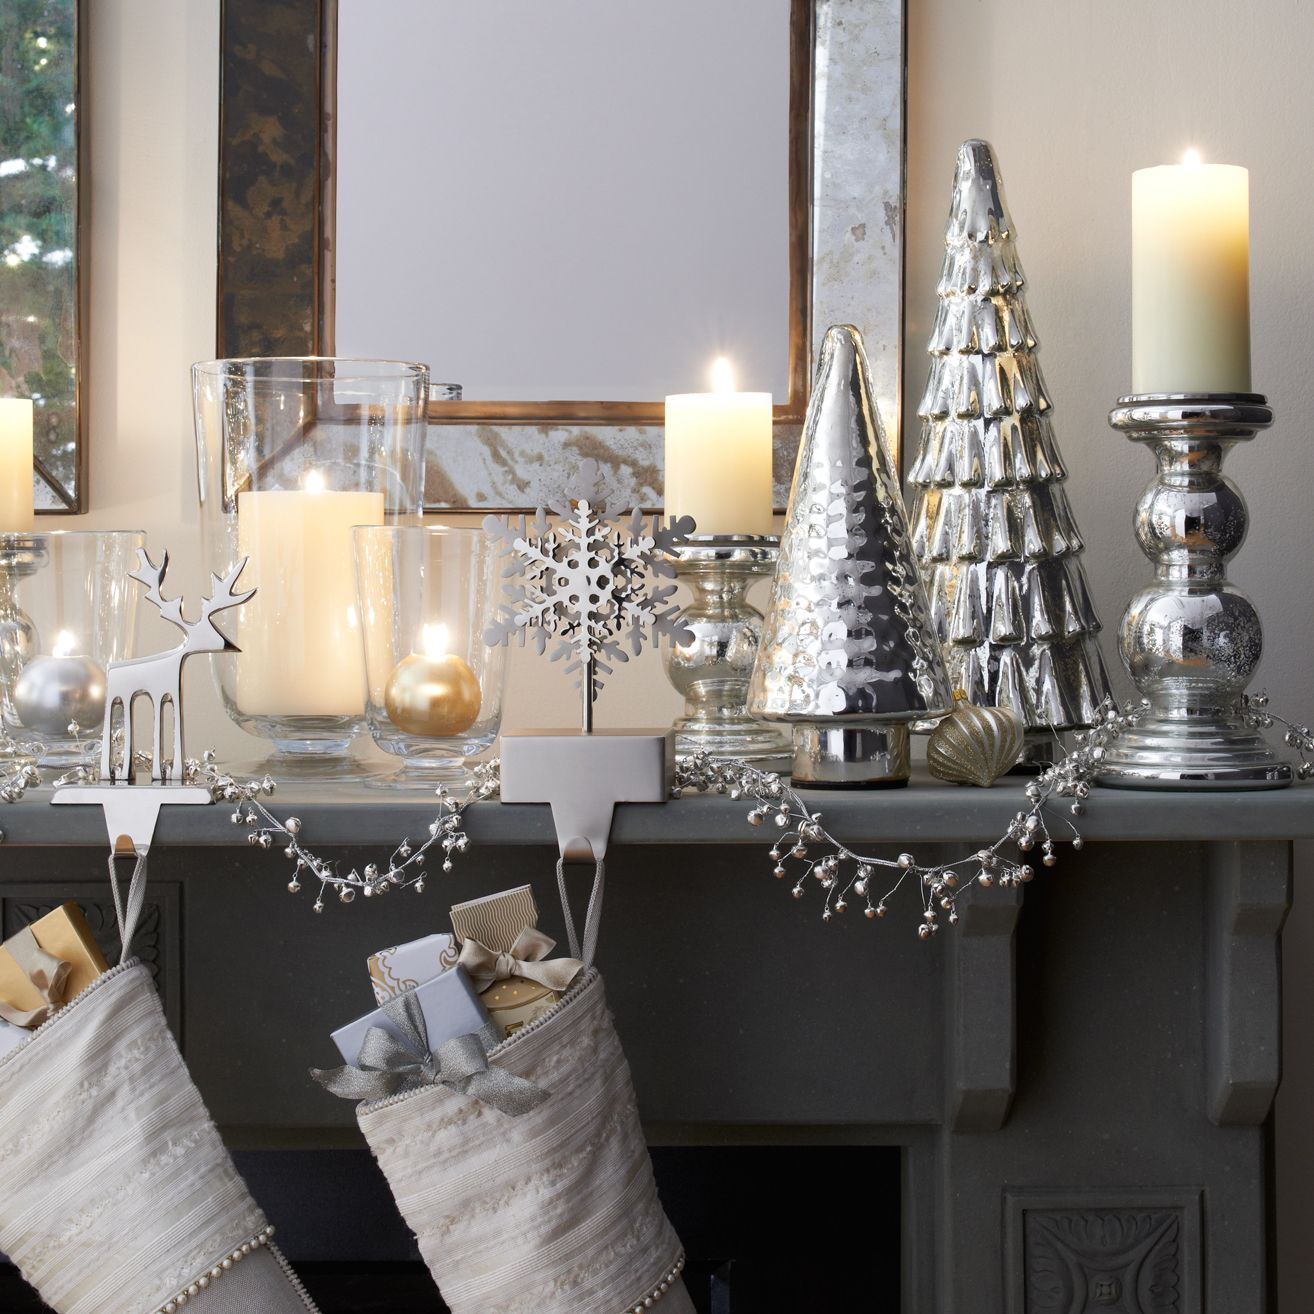 Create a vintage-style wonderland of shimmering elegance lit by classic mercury glass pillar holders and antiqued glass trees that glow from within (thanks to concealed batteries). Swag a delicate silver beaded garland between stockings hung with care from silver reindeer and snowflakes. Above it all, a row of square mirrors framed in distressed tin reflects the glimmer and shine.